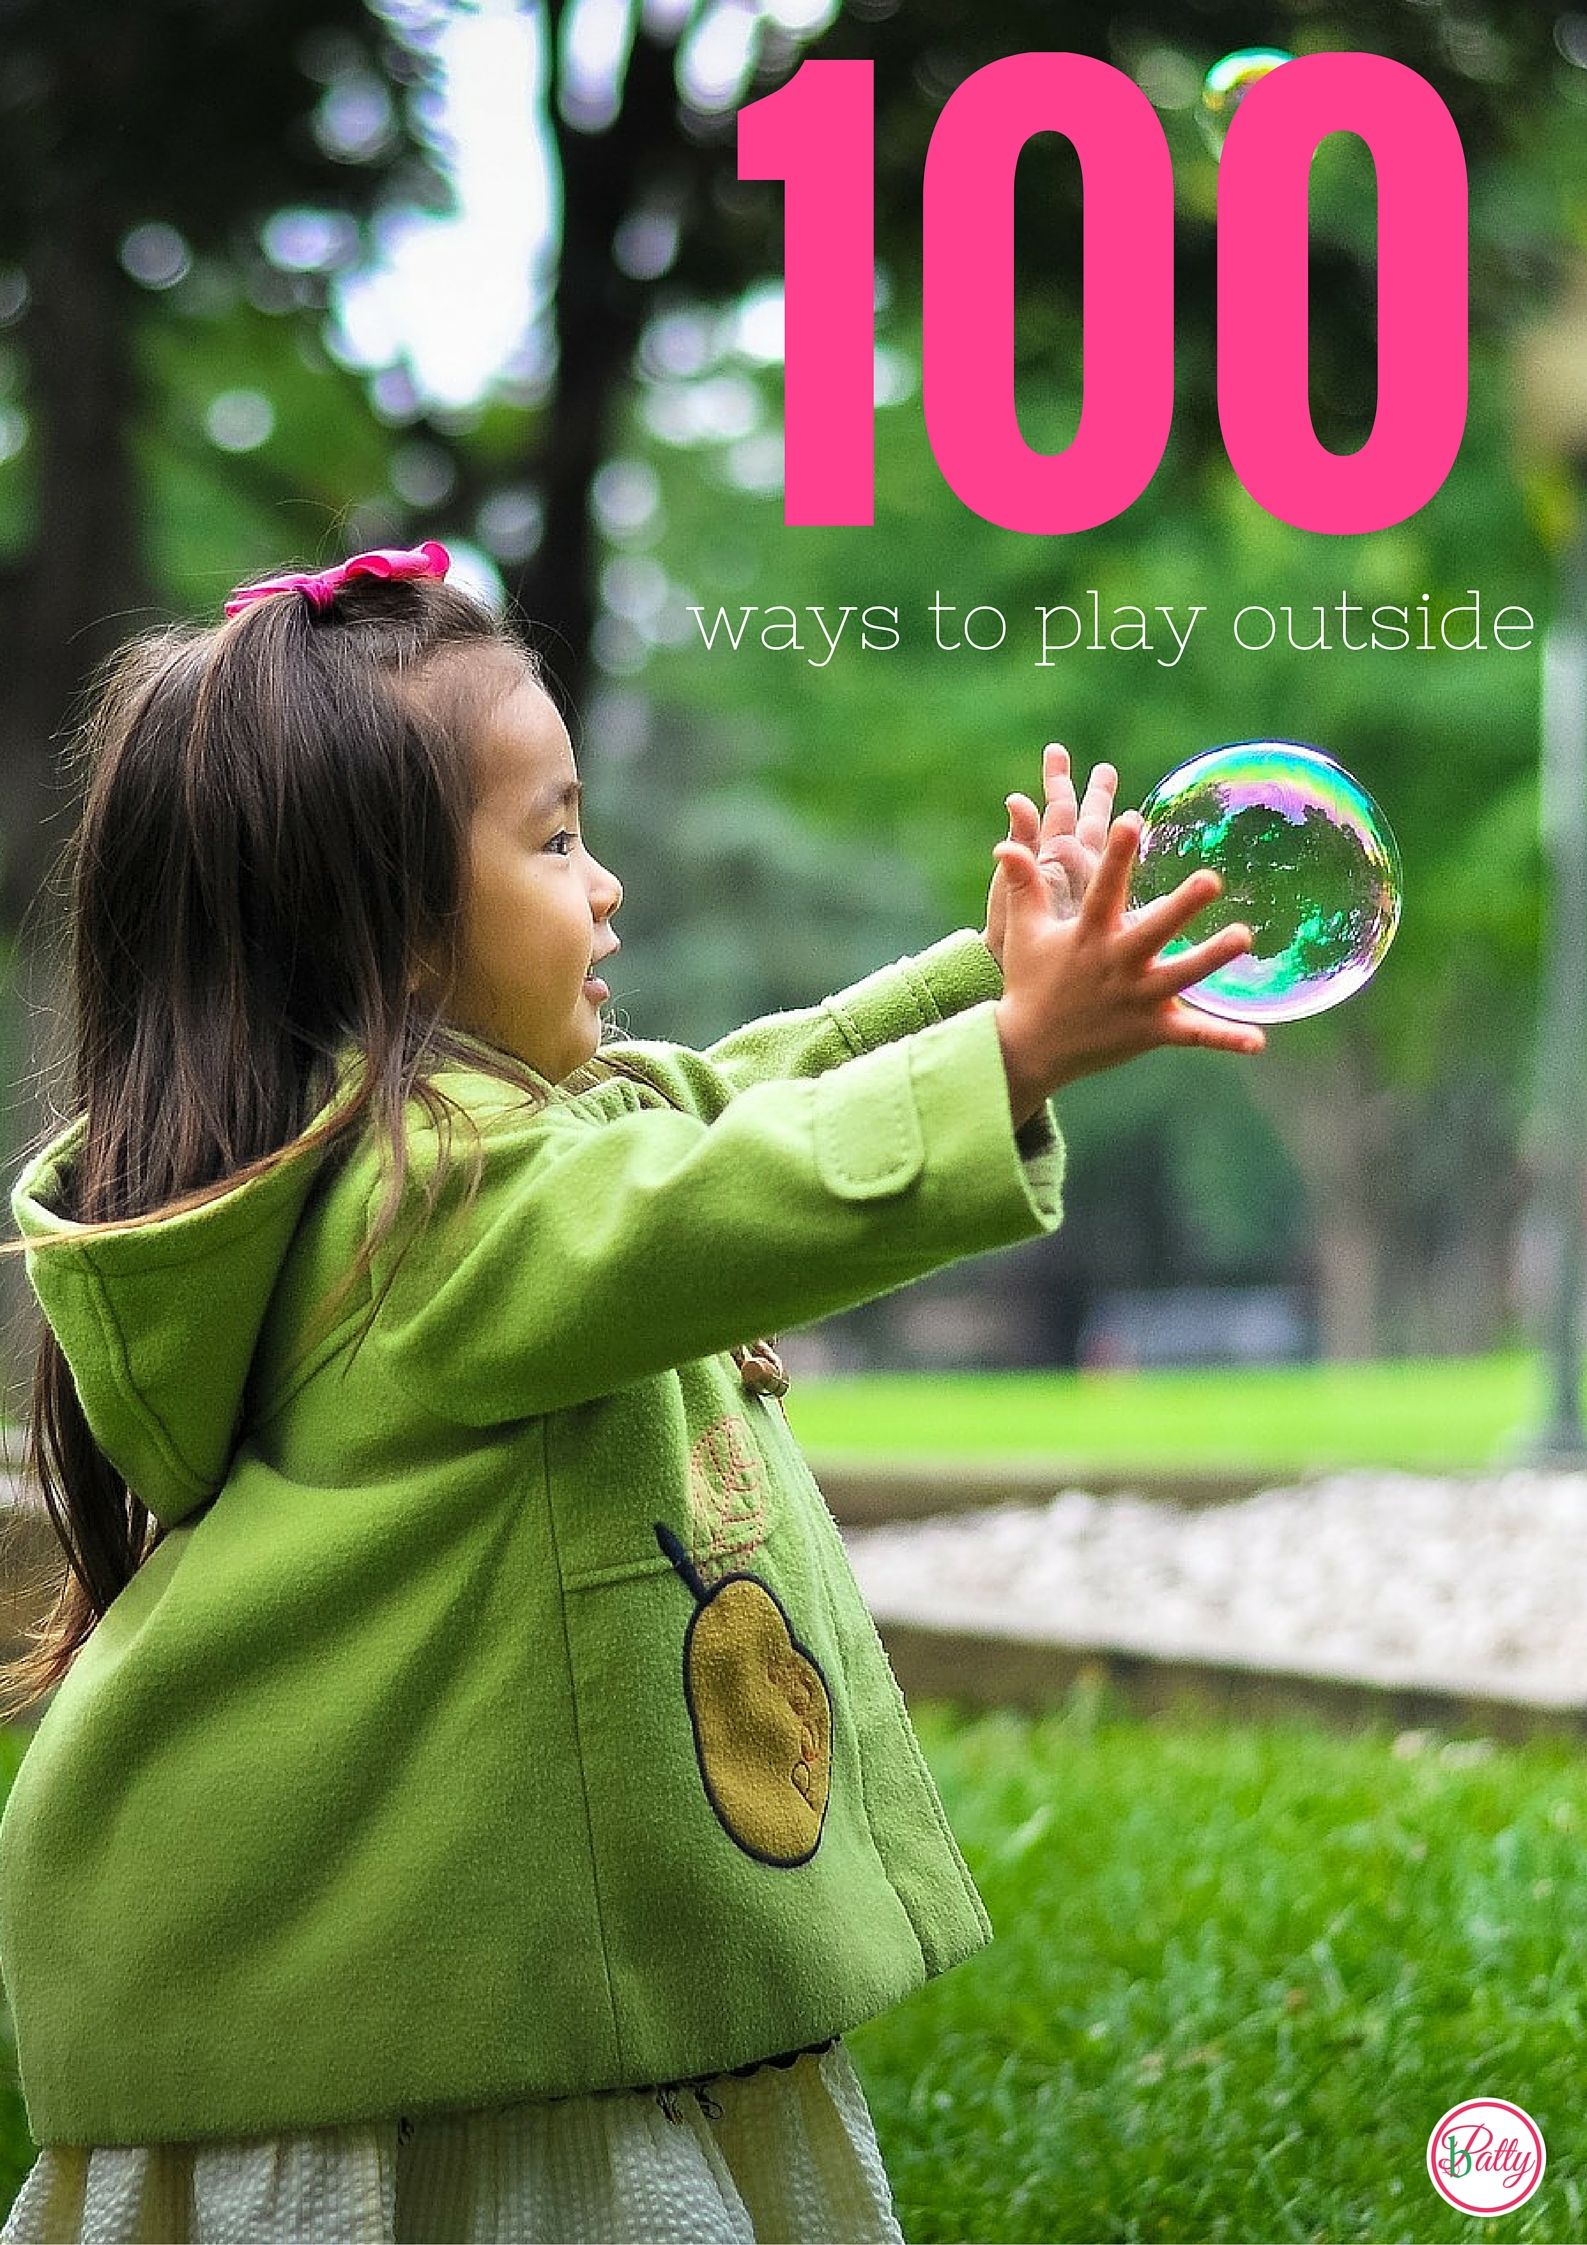 100 ways to play outside with kids.